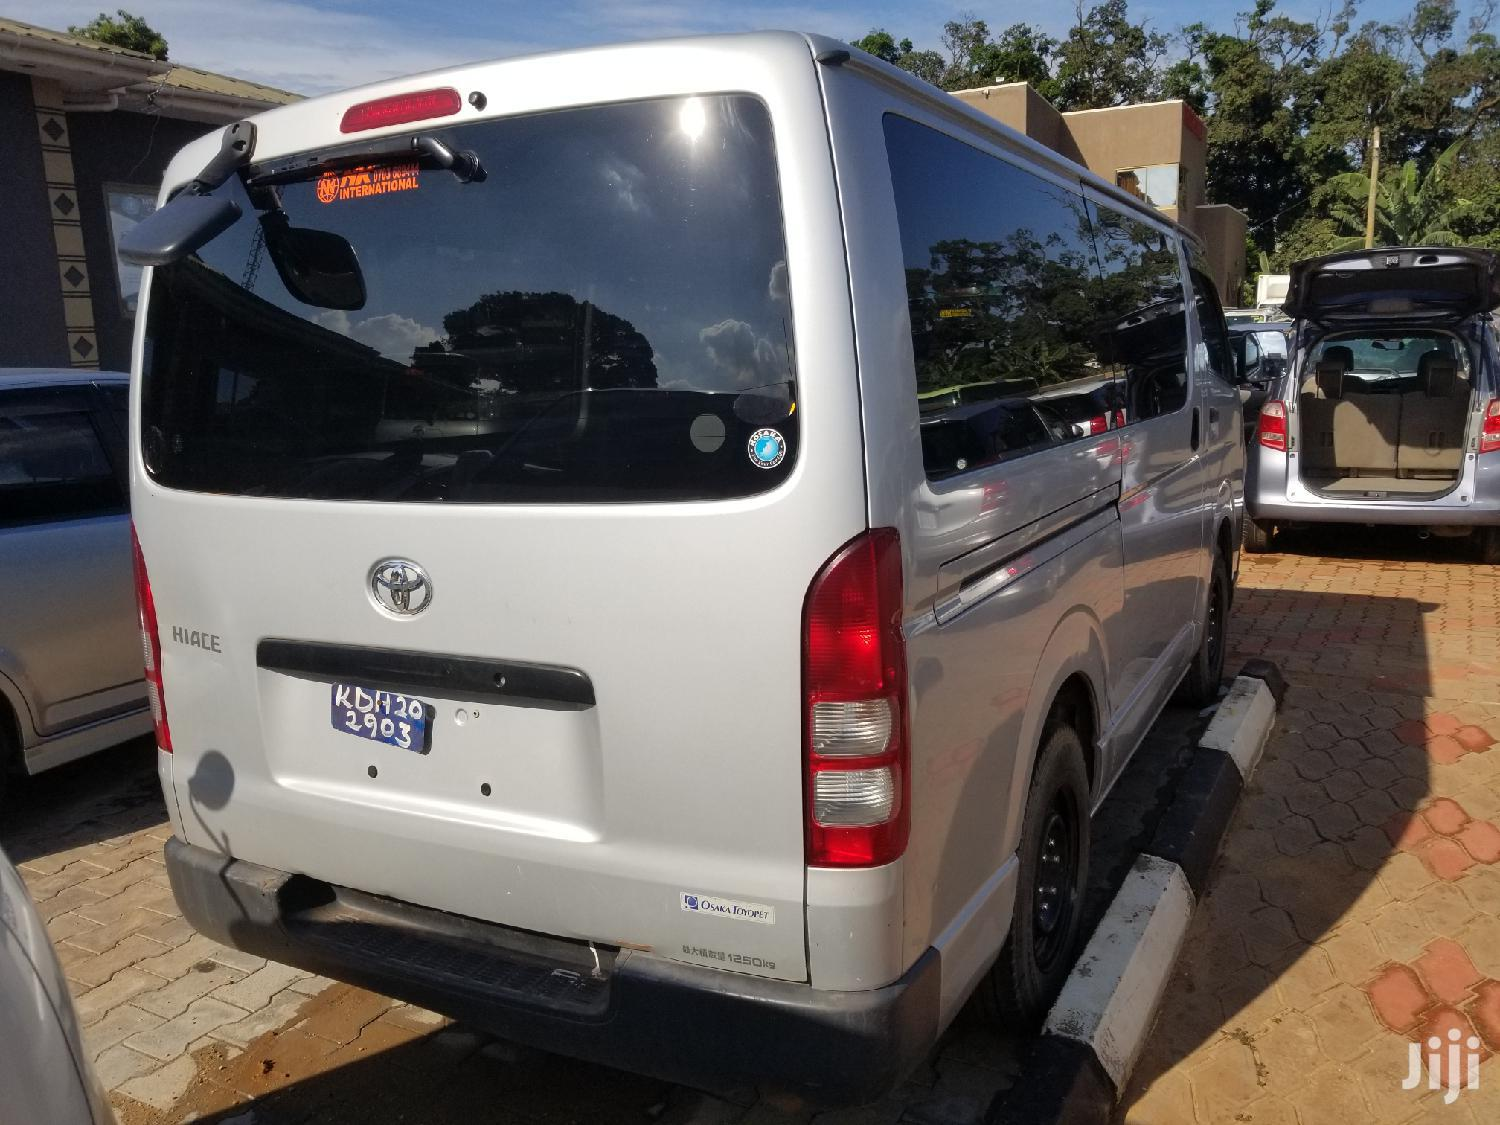 Toyota HiAce 2006 Silver   Buses & Microbuses for sale in Kampala, Central Region, Uganda